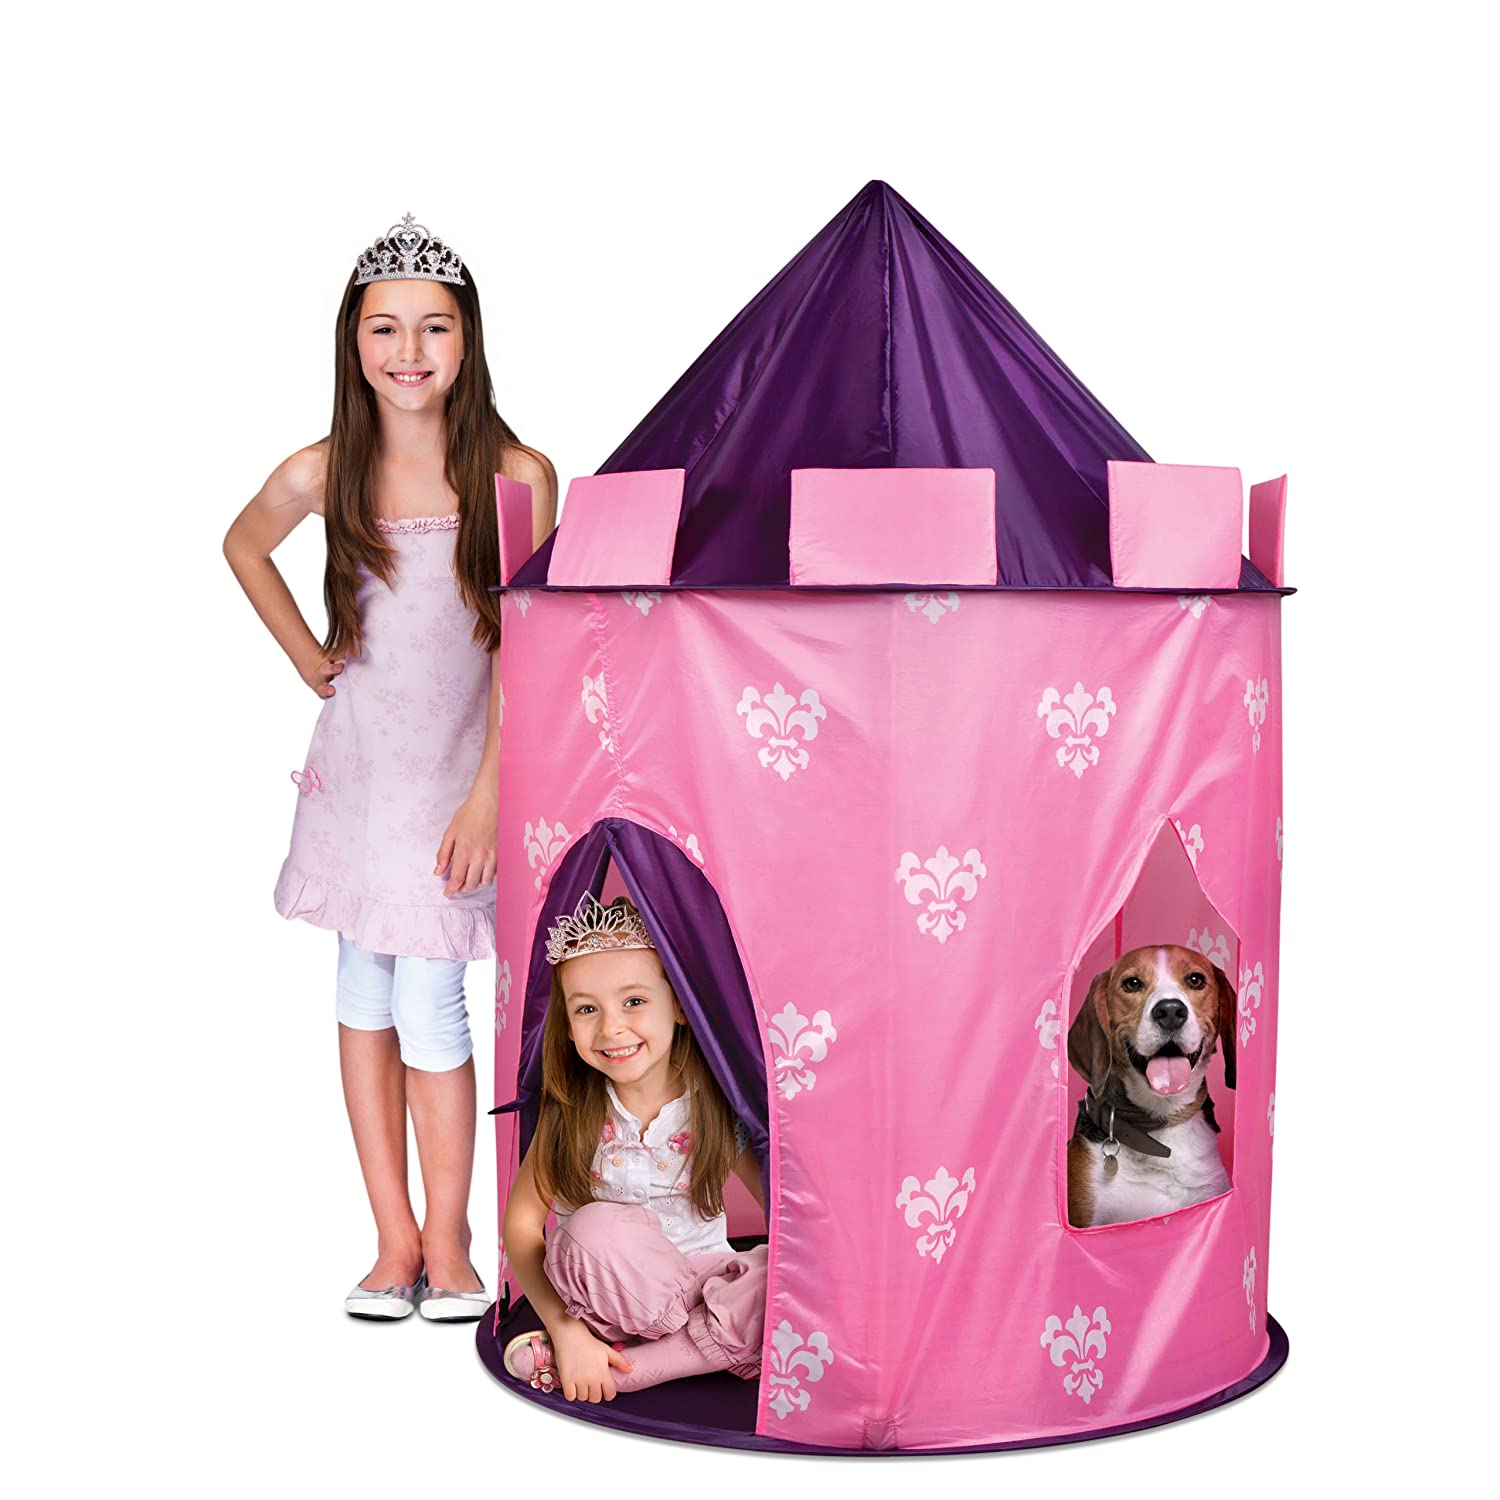 This high quality indoor kids tent not only has a roomy door but also lets your little princess peer out her window over looking her kingdom.  sc 1 st  kids Indoor Tents & Princess Pink Castle Indoor Tent - kids Indoor Tents